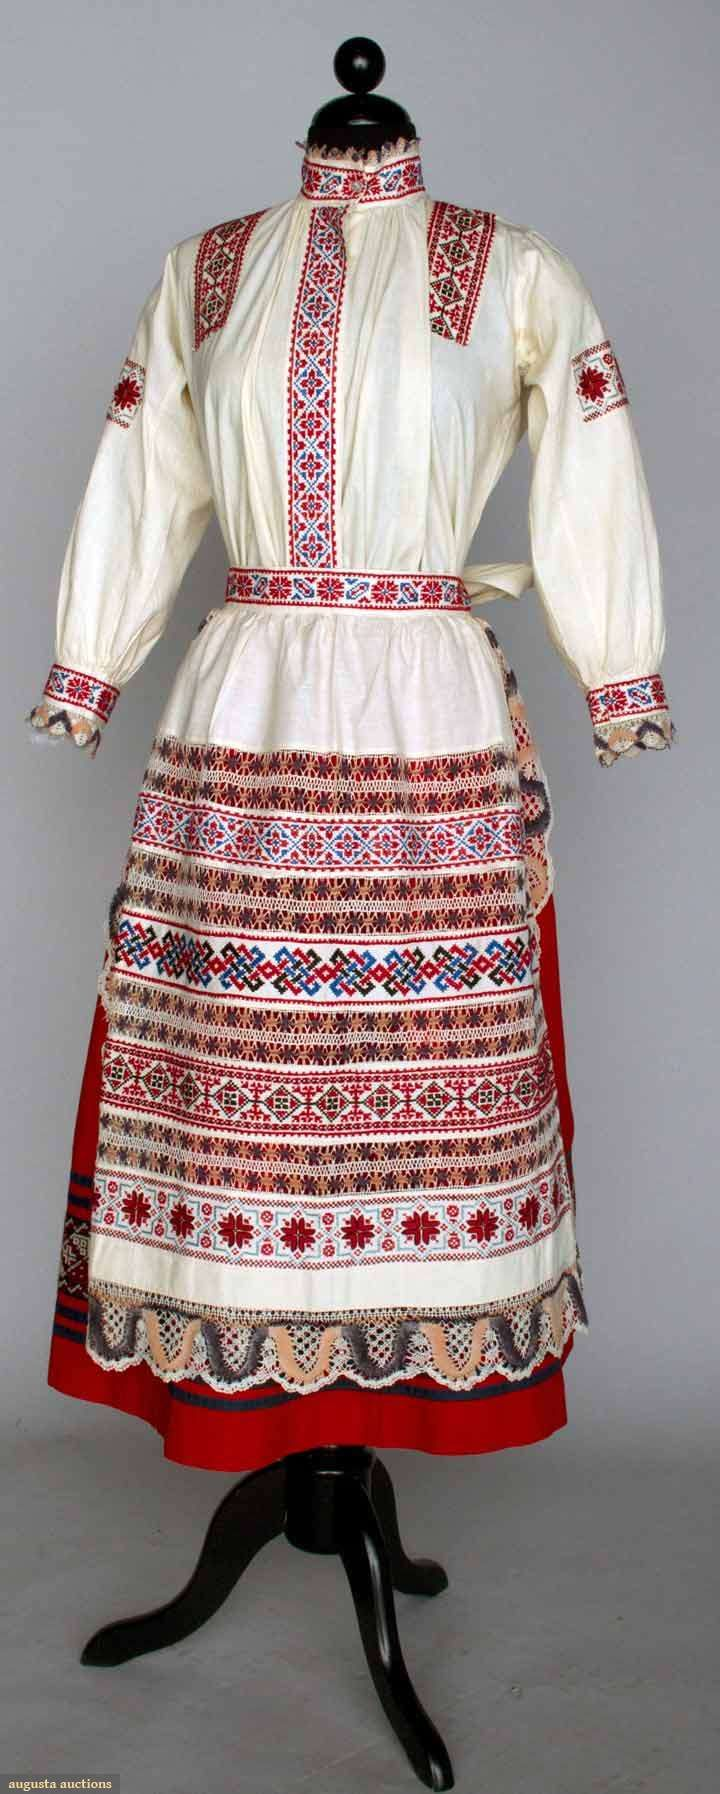 Augusta Auctions: woman's regional dress,white blouse and apron embroidered in red and blue cross stich- slovakia, 1920s